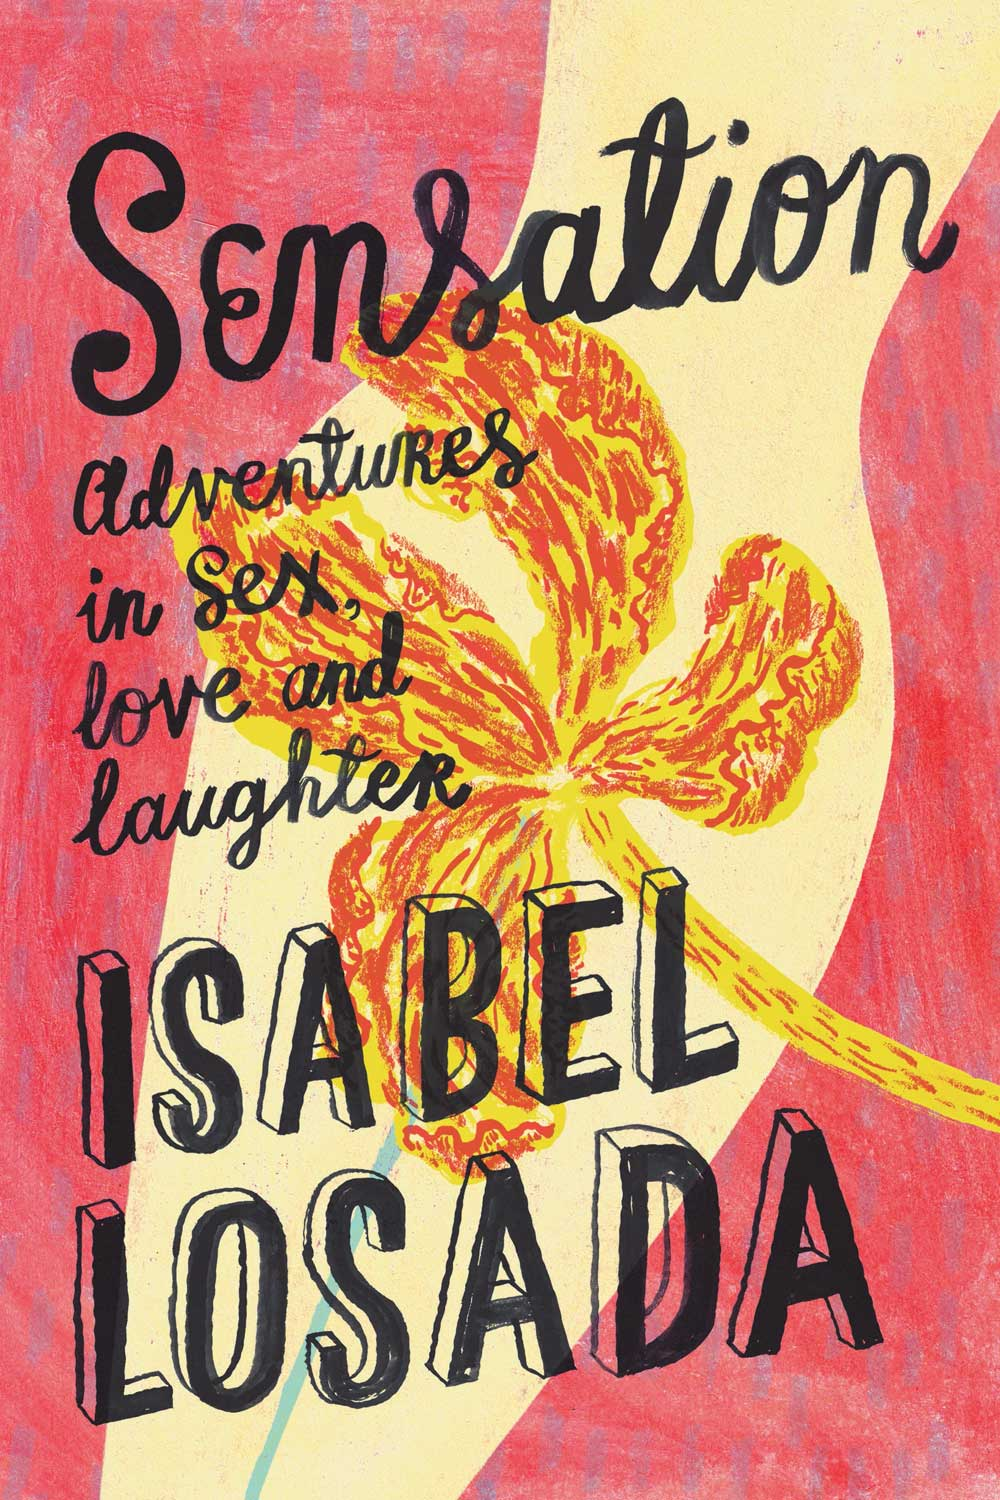 Sensation - Isabel Losada